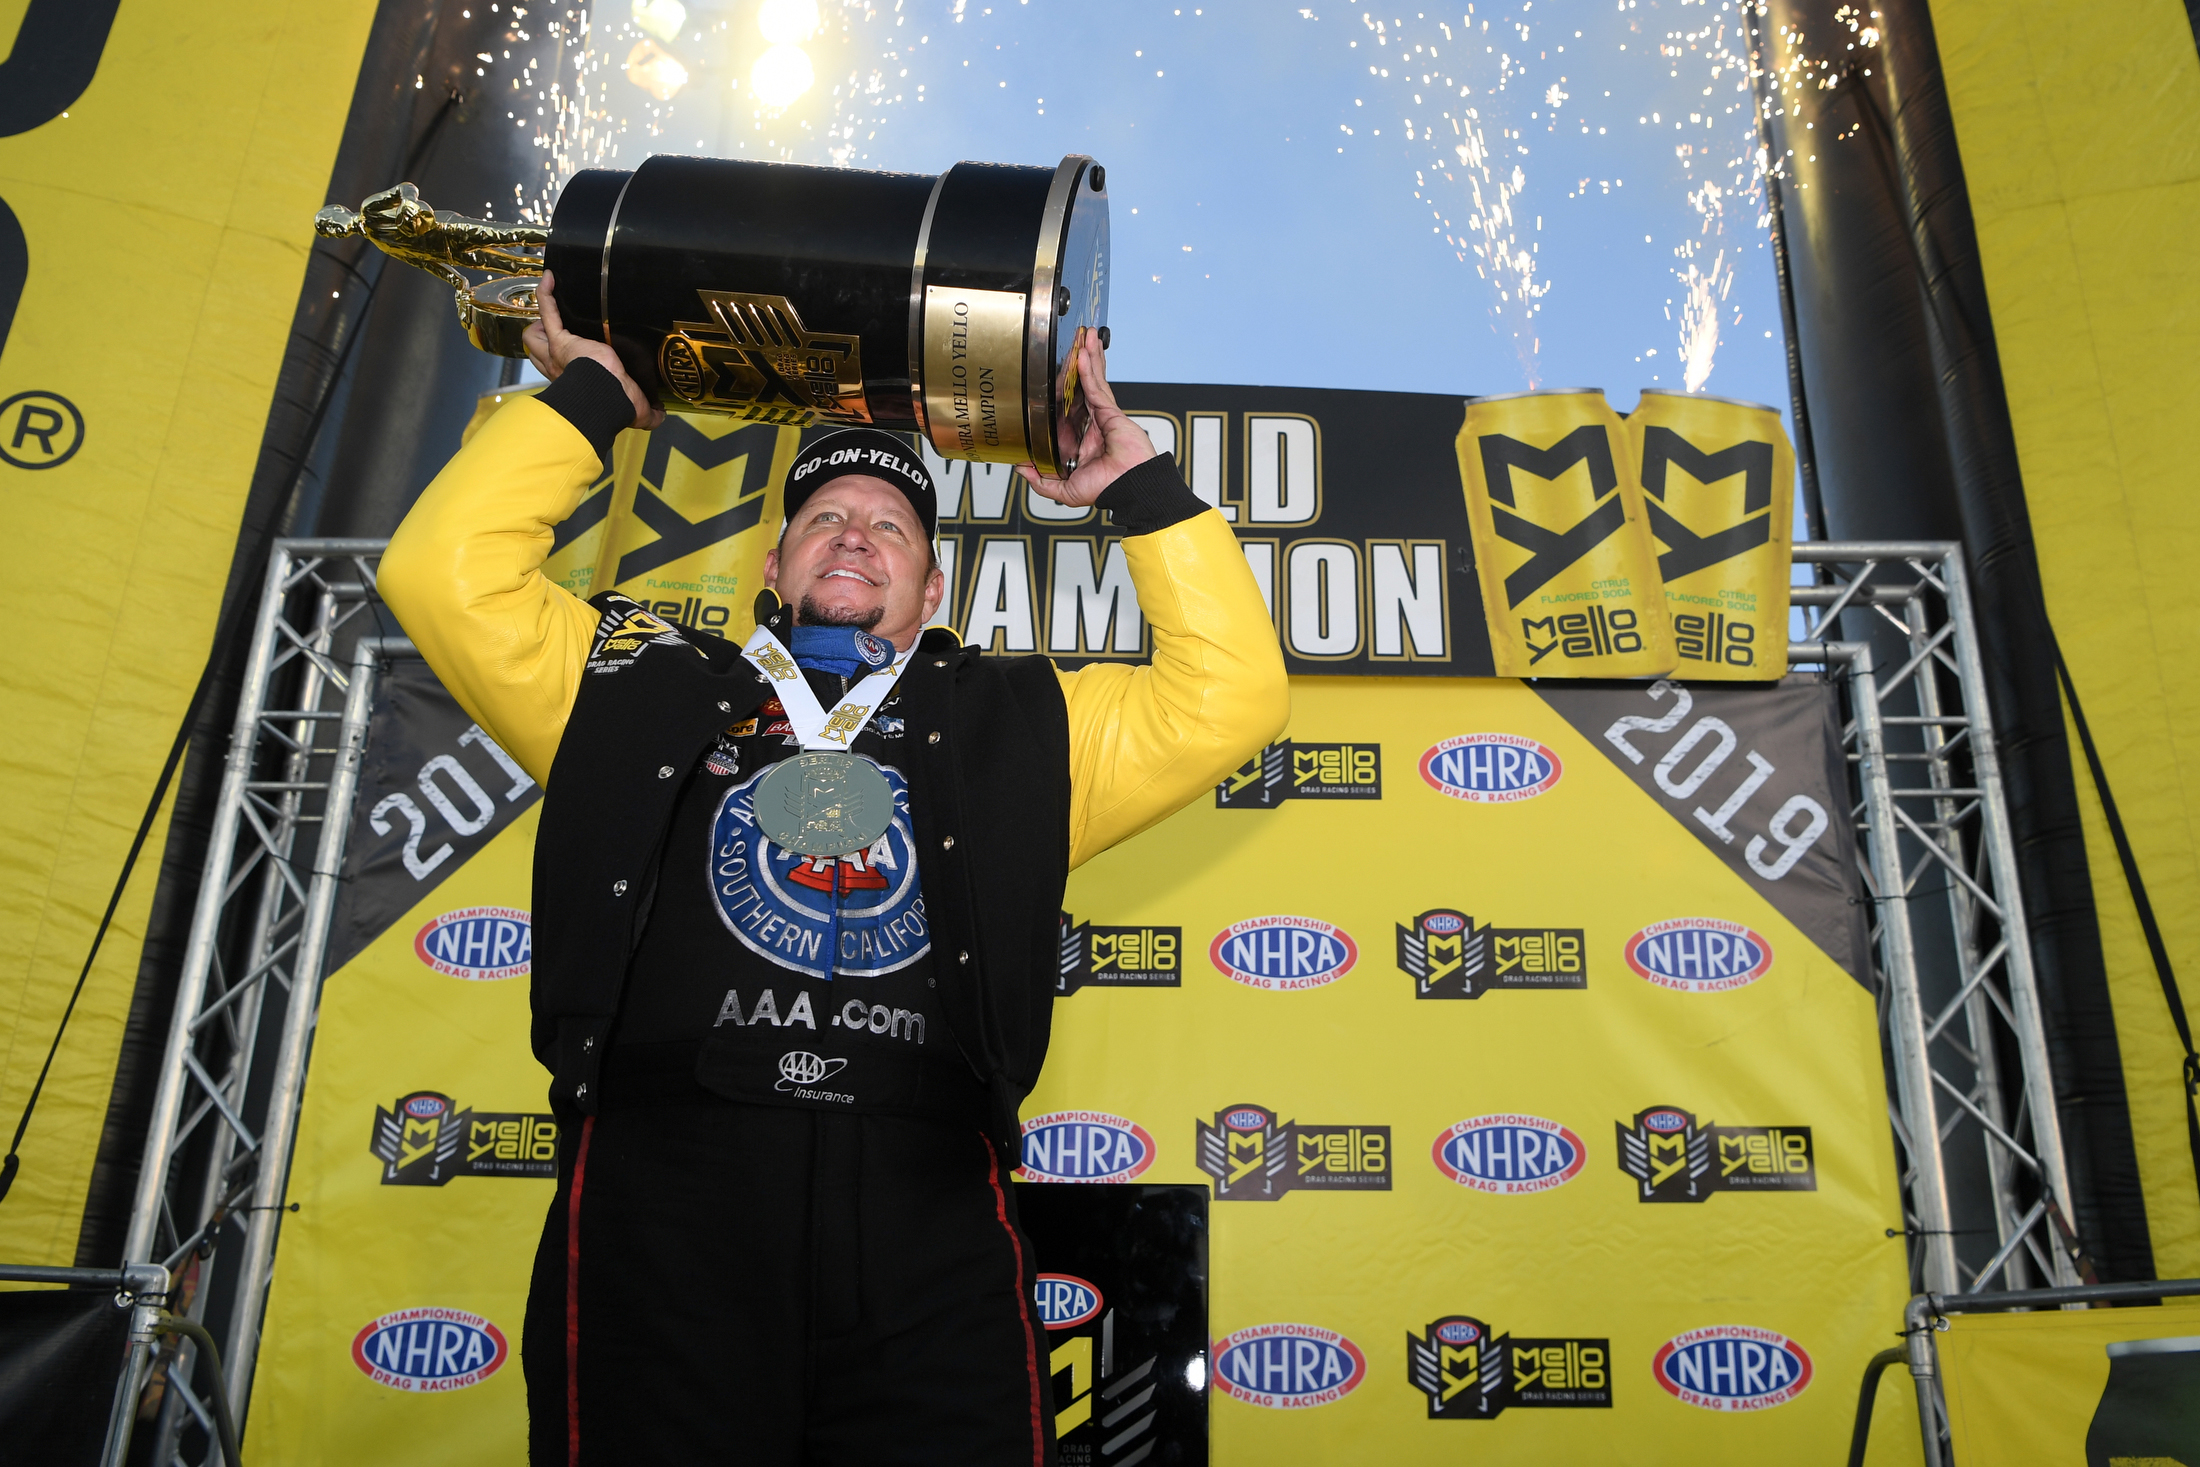 AAA of Southern California Funny Car pilot Robert Hight celebrating his 2019 Funny Car Championship at the Auto Club NHRA Finals